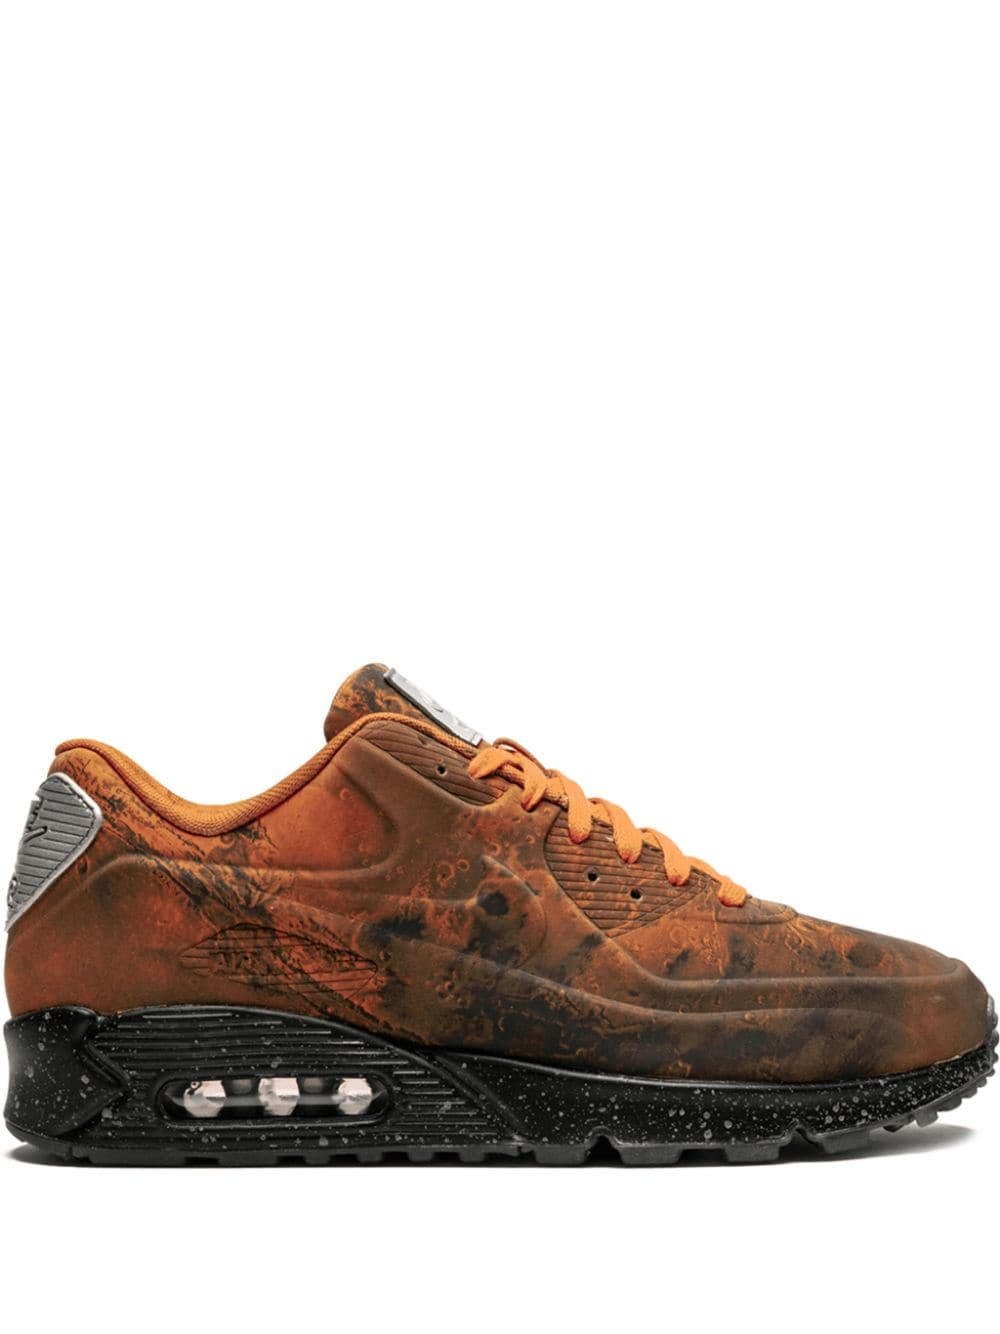 Nike Air Max 90 Mars Landing sneakers - Orange von Nike